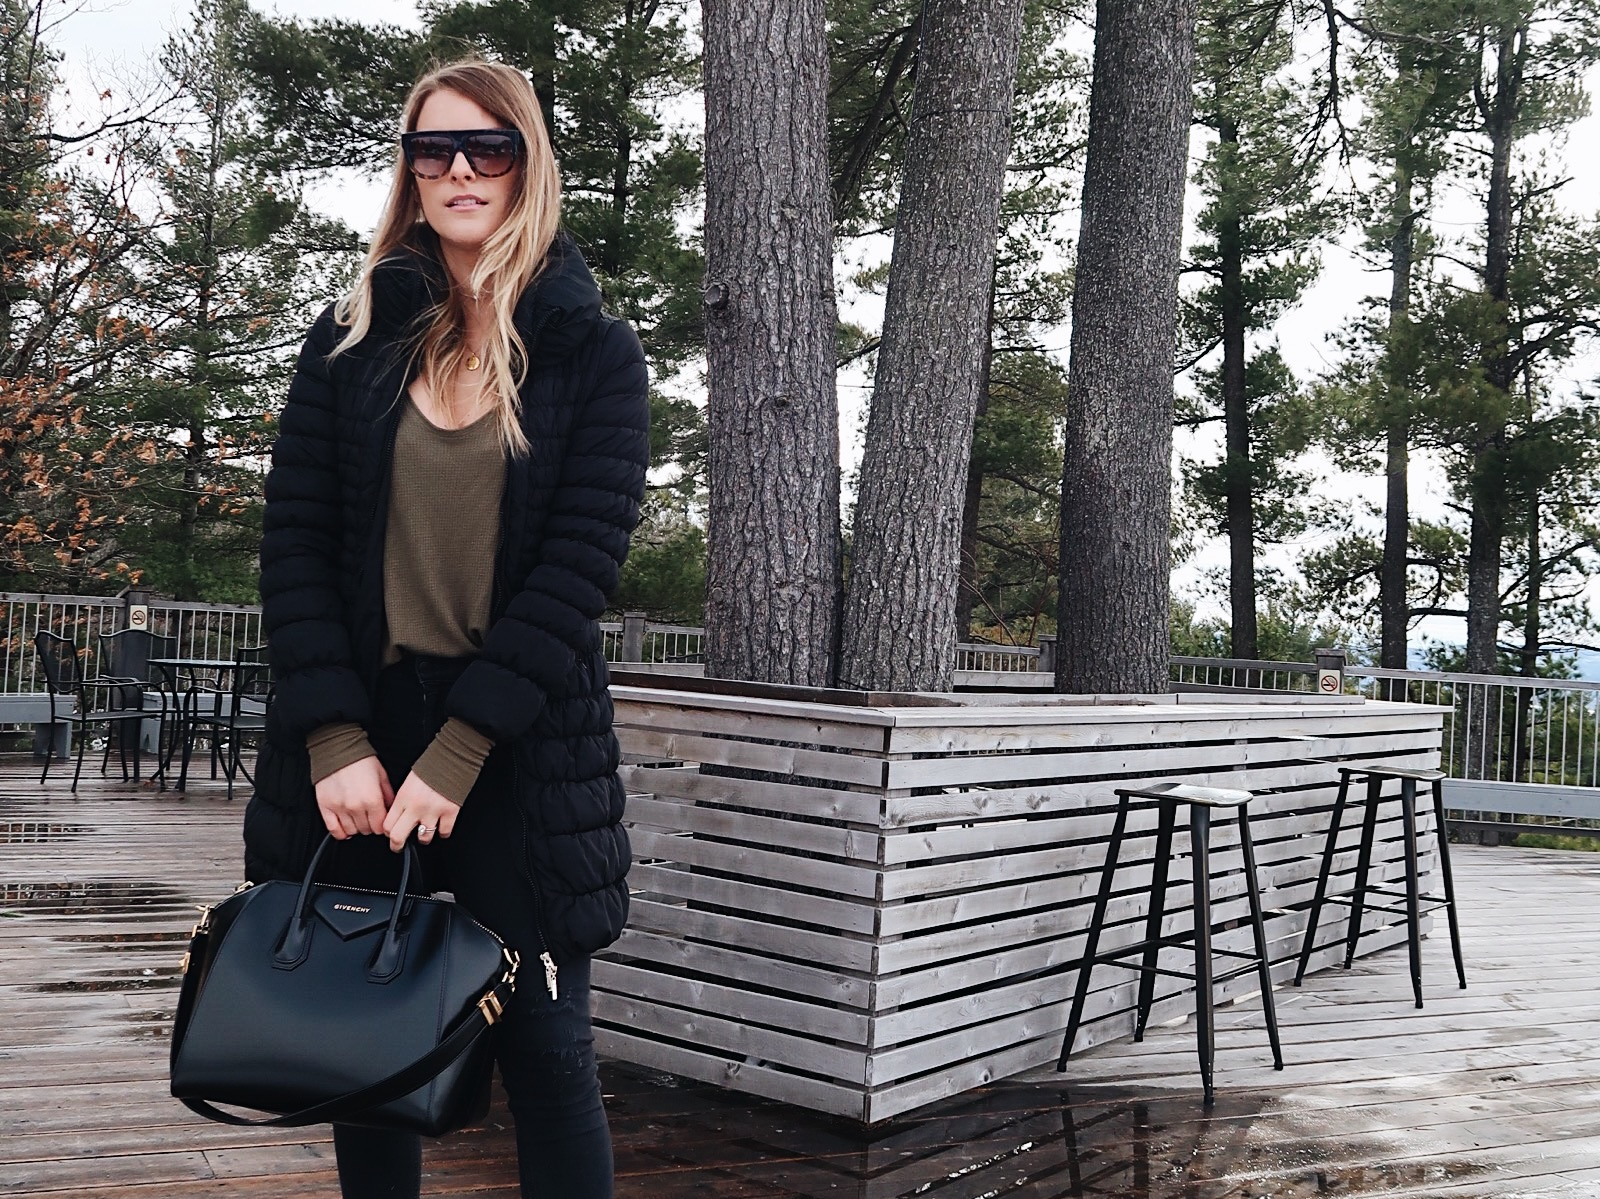 life with aco, Givenchy bag, winter outfit